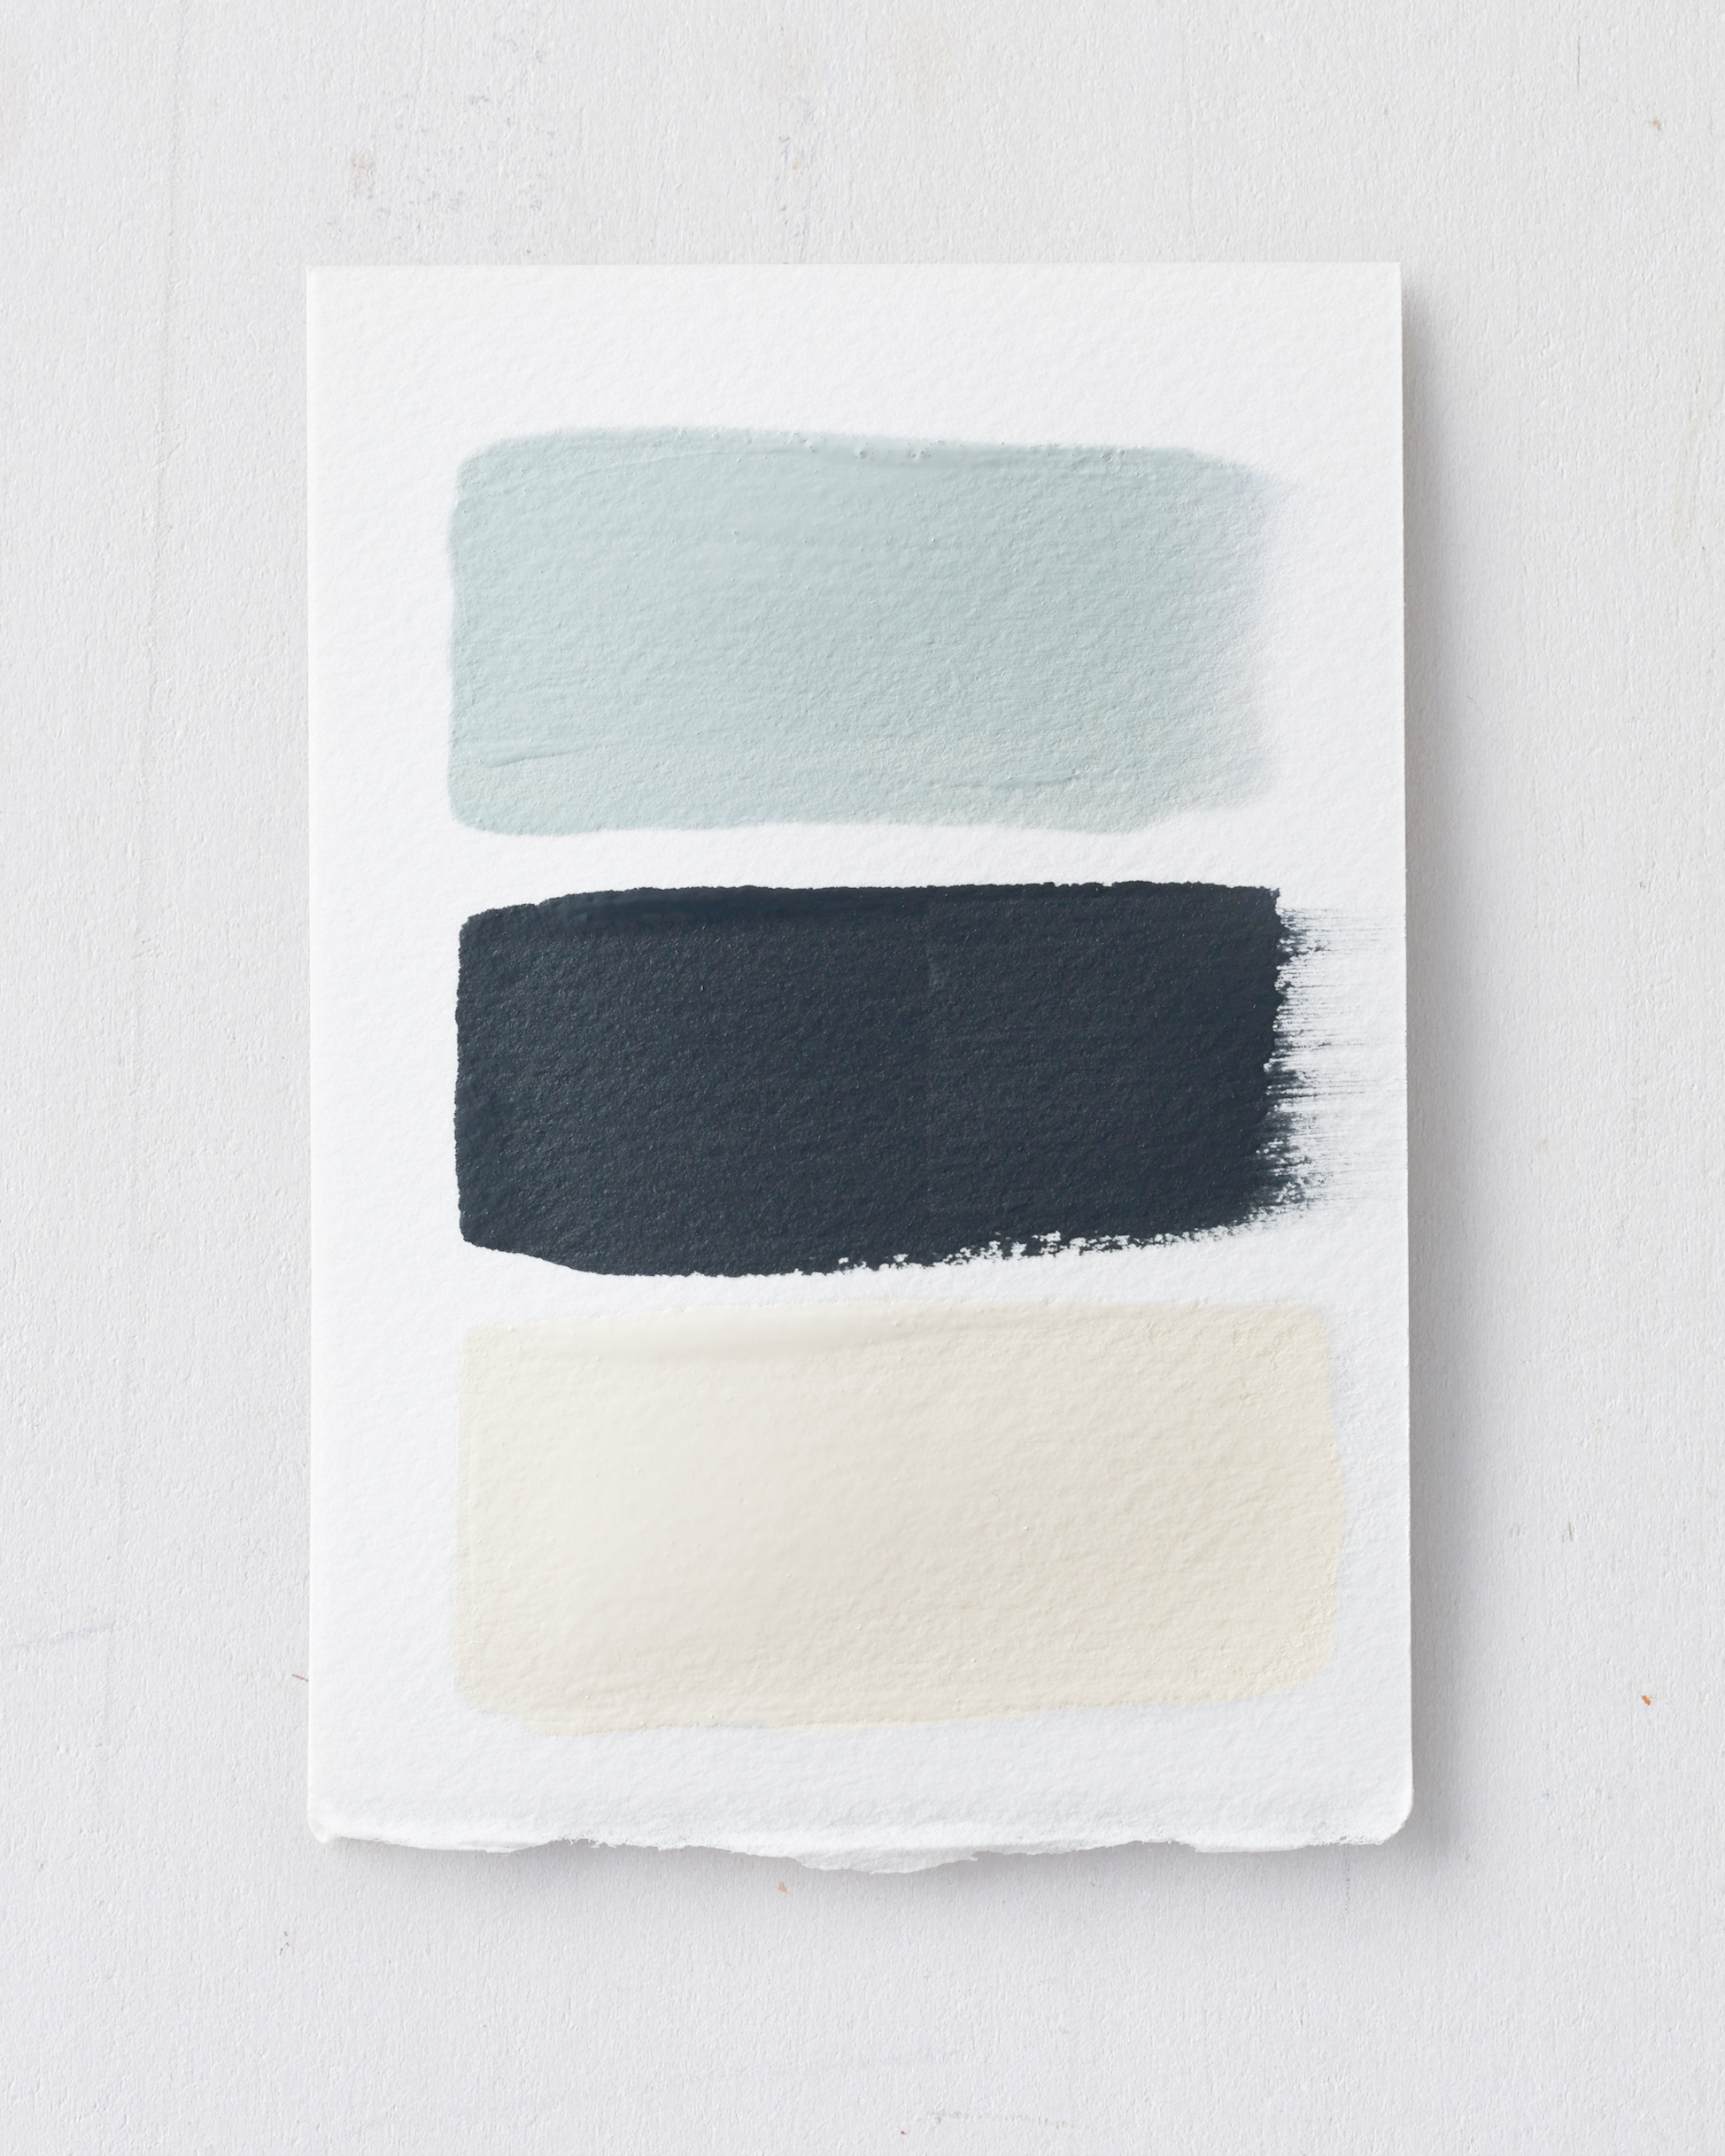 paint-swatch-david-rau-mld110837-6.jpg